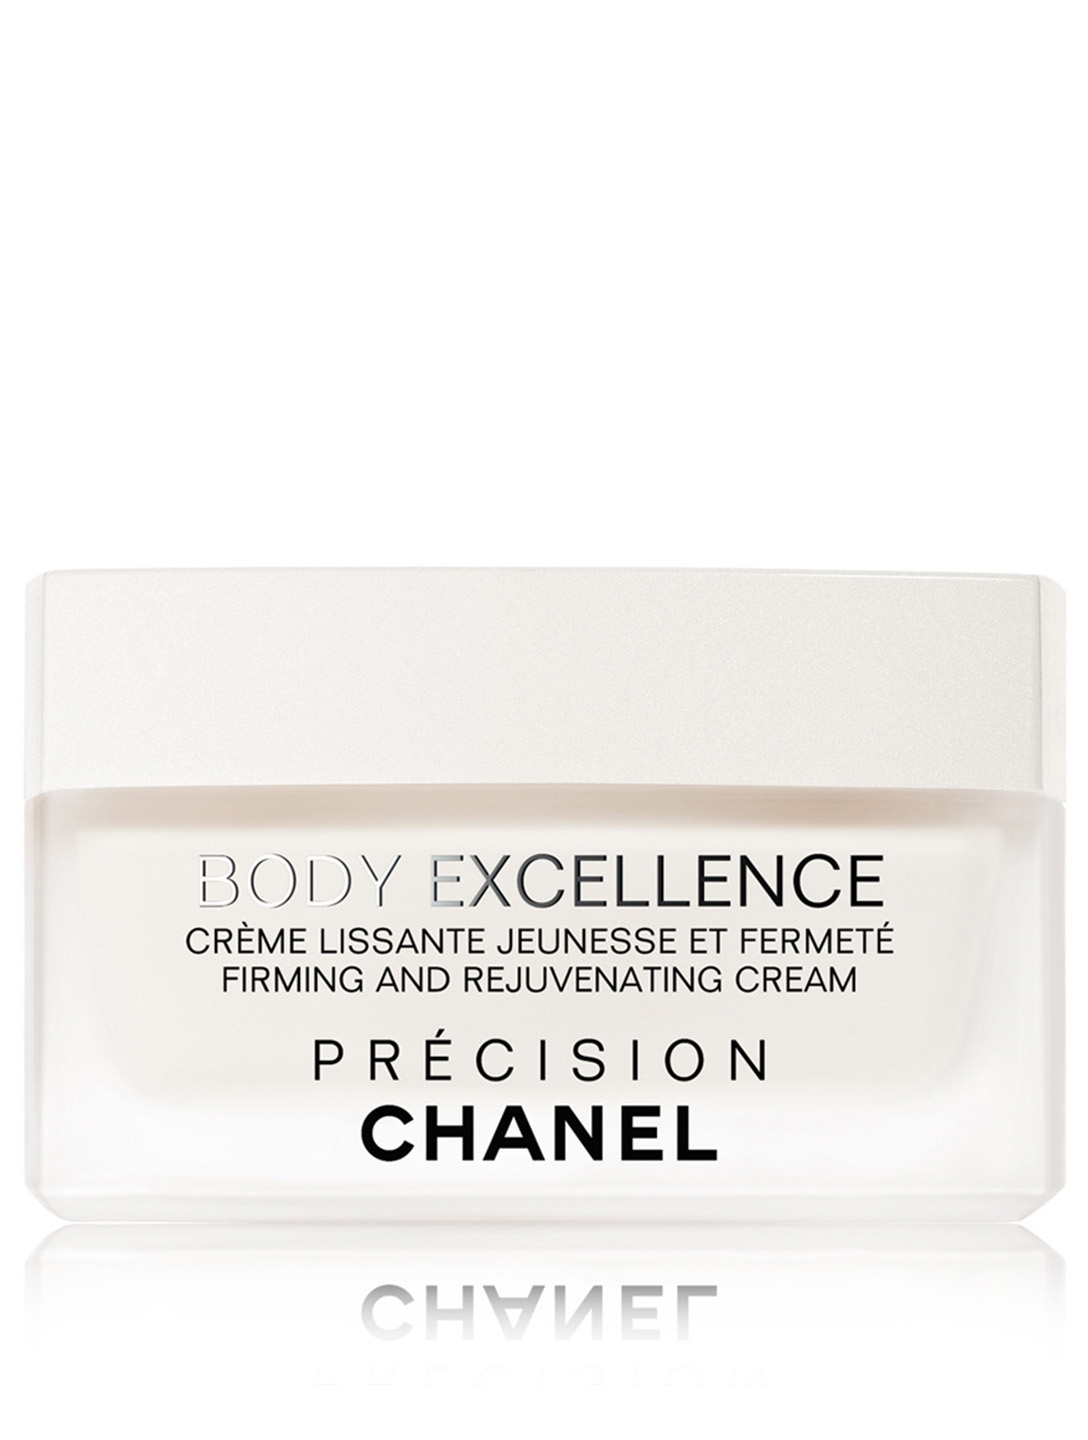 CHANEL Firming and Rejuvenating Cream CHANEL